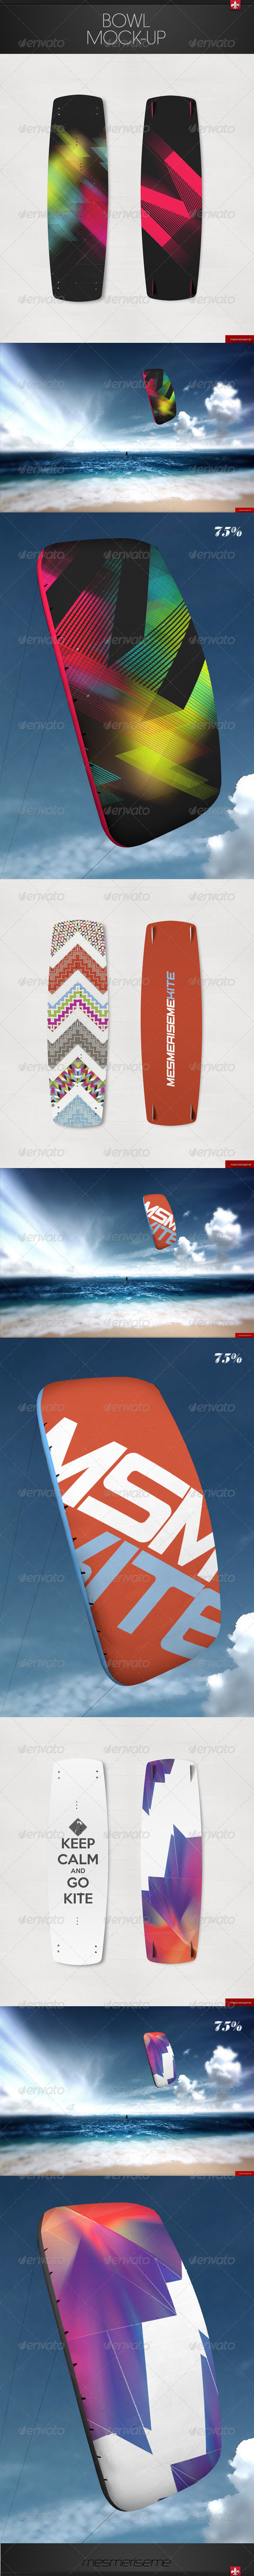 GraphicRiver Kitesurfing Mock-up 7586042